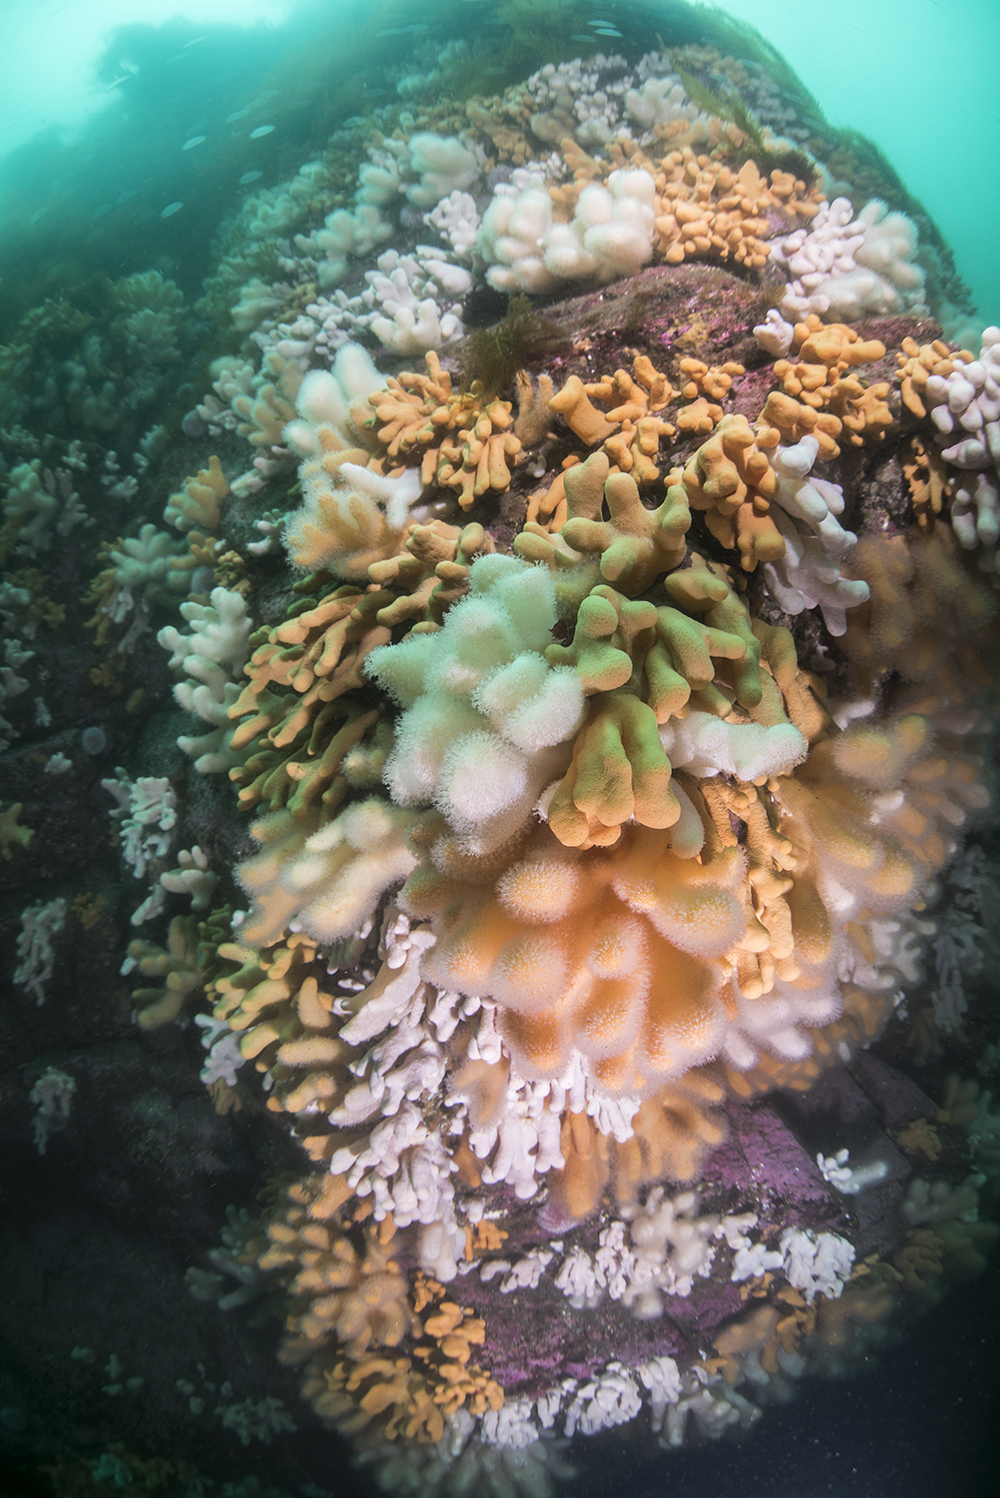 reef scene, coral